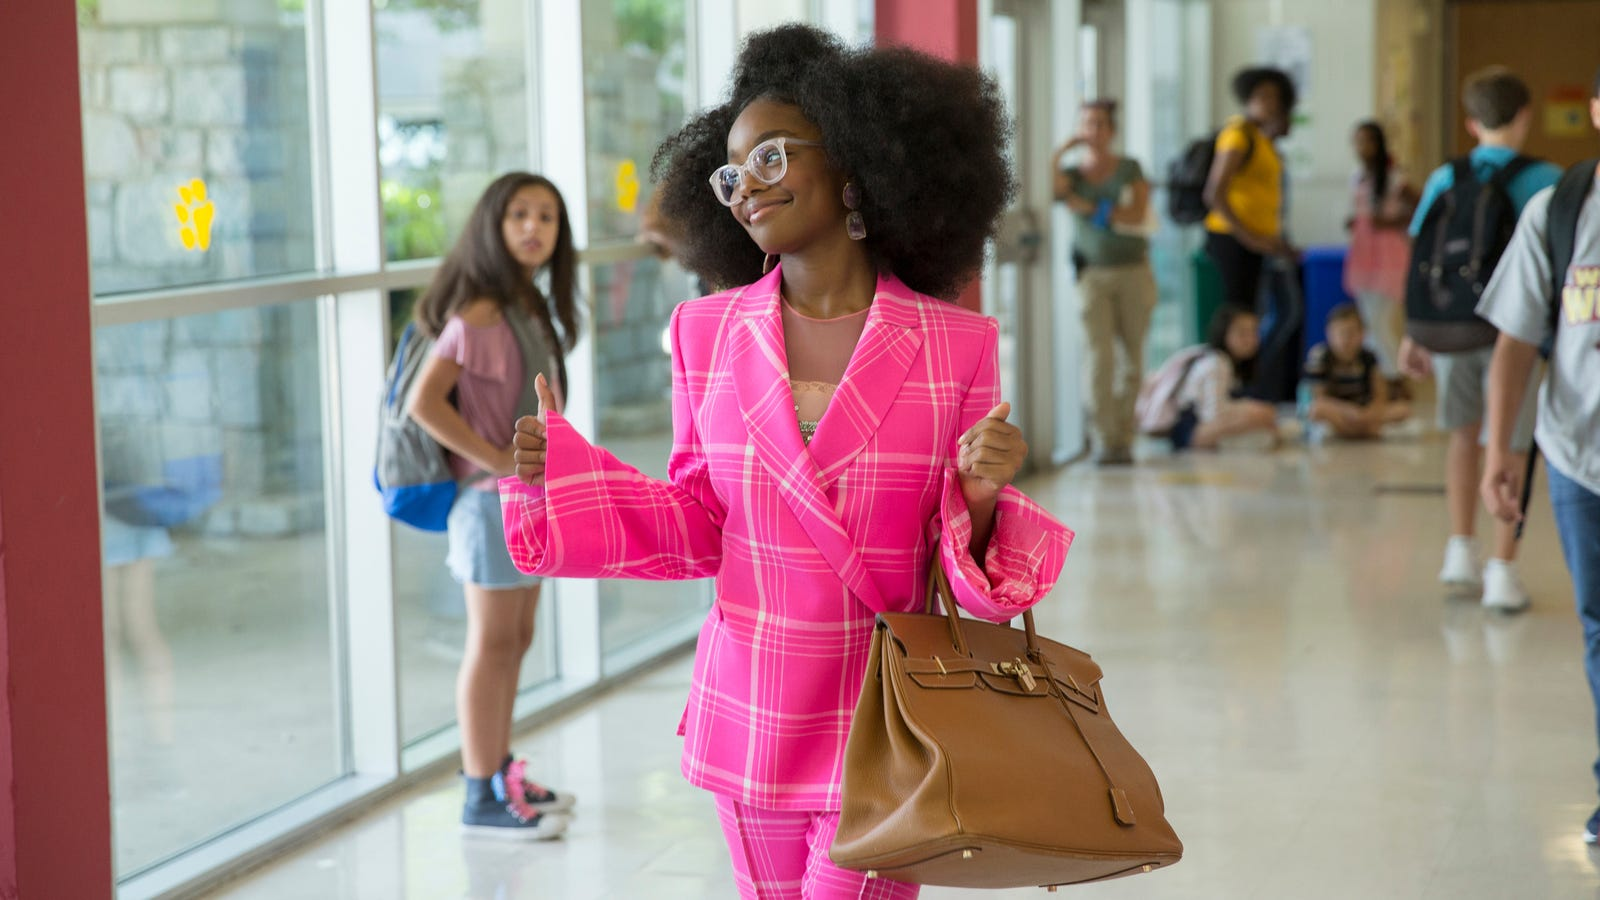 #BlackGirlMagic: Black-ish Star Marsai Martin Set to Become Youngest Executive Producer in Hollywood History